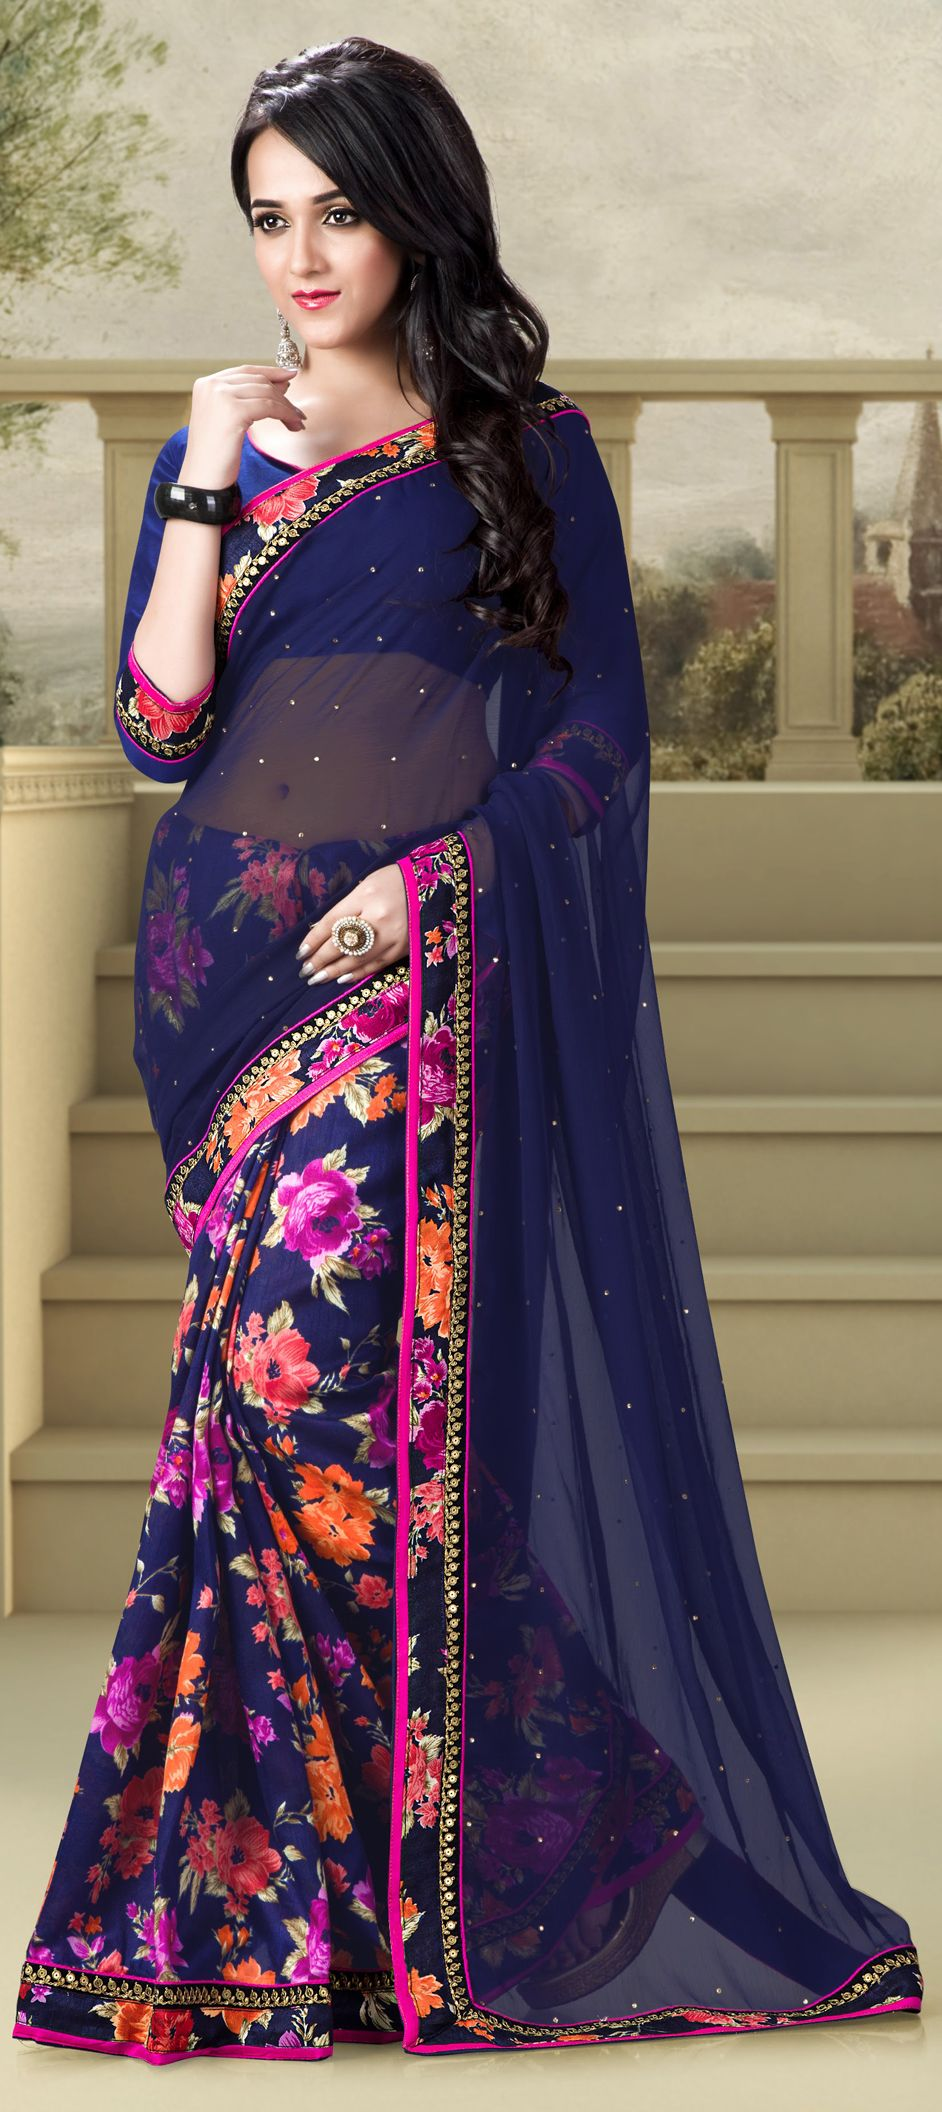 181667: Blue color family Party Wear Sarees, Printed Sarees with matching unstitched blouse.